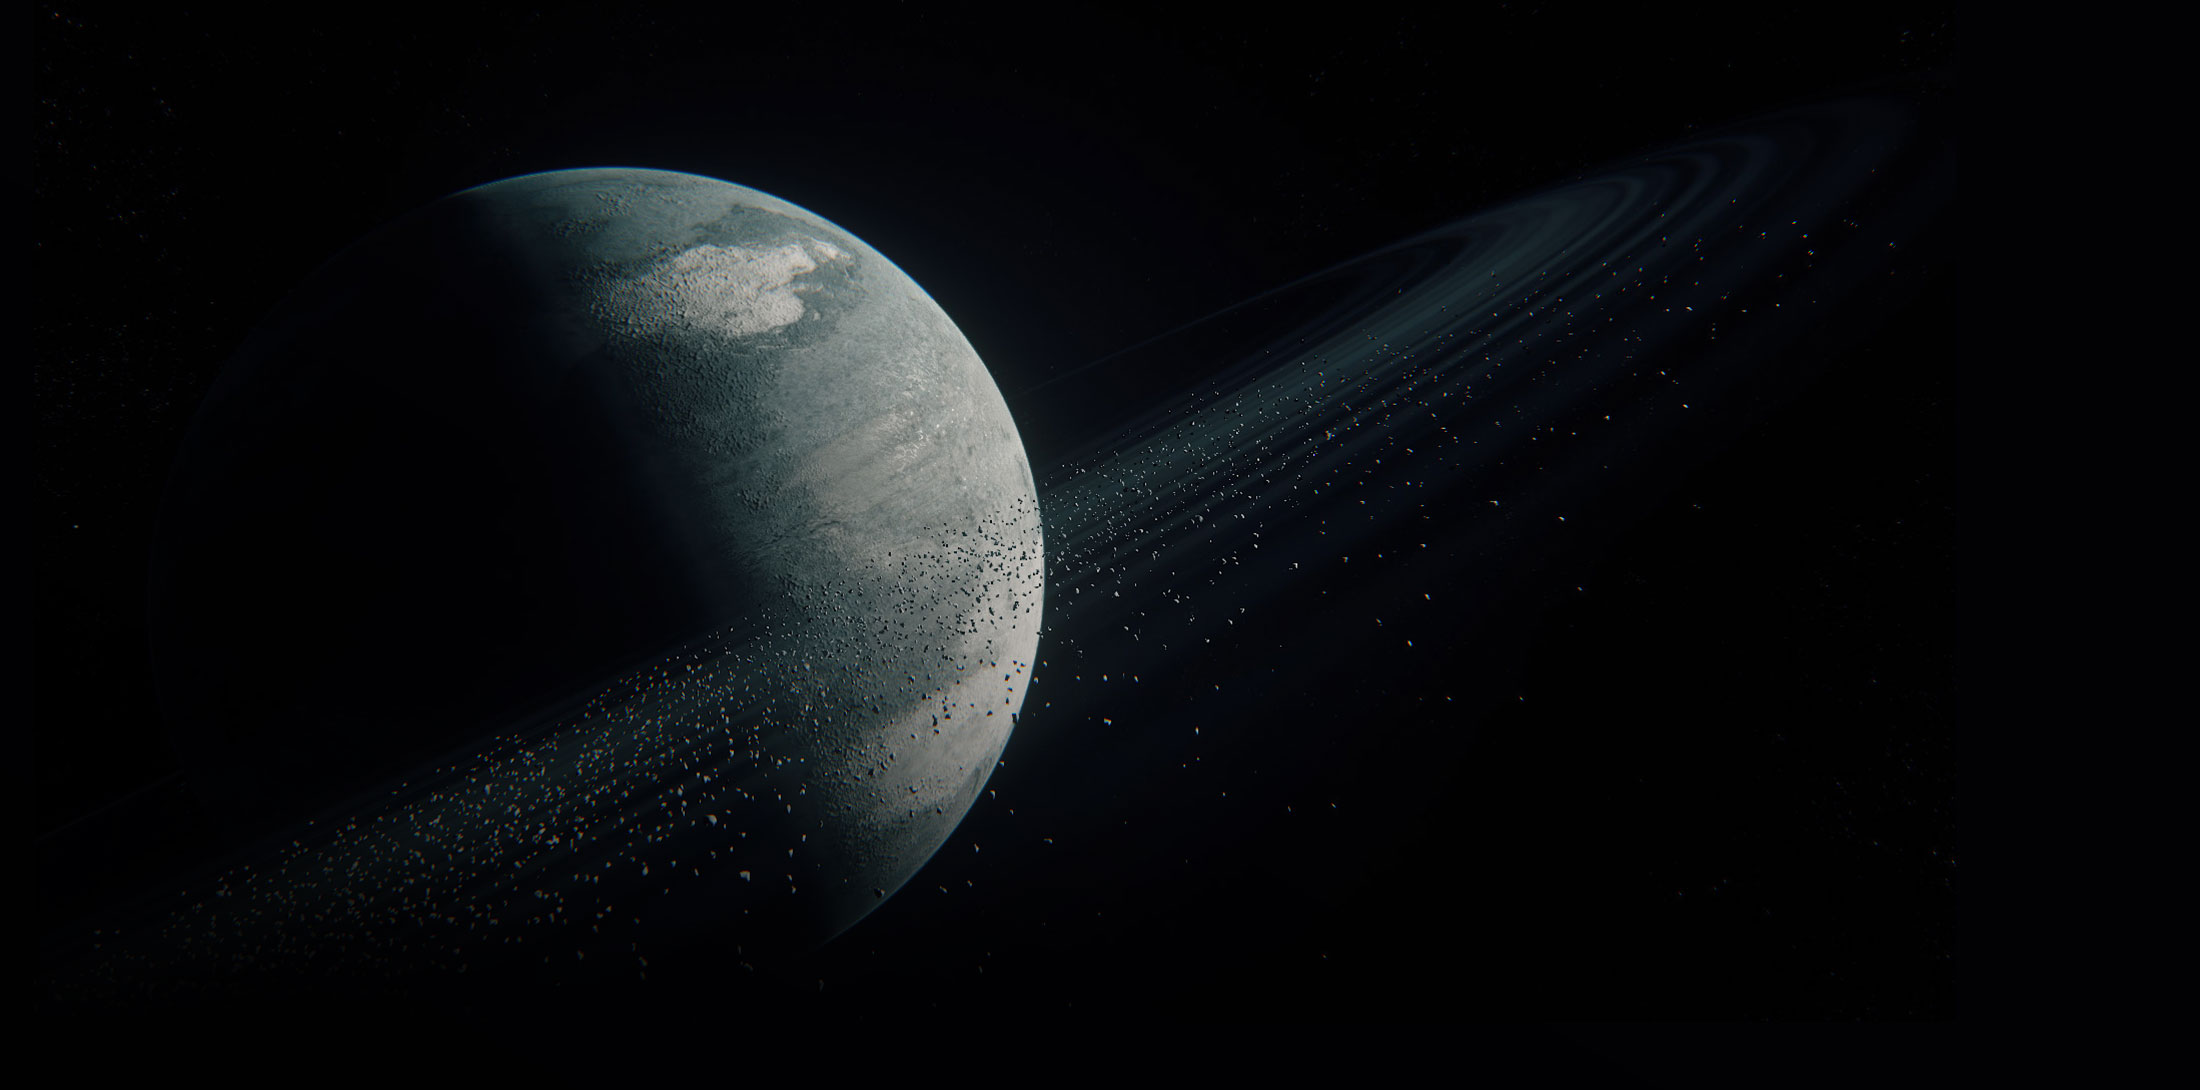 star citizen 3.0 leaked screenshot planet with rings